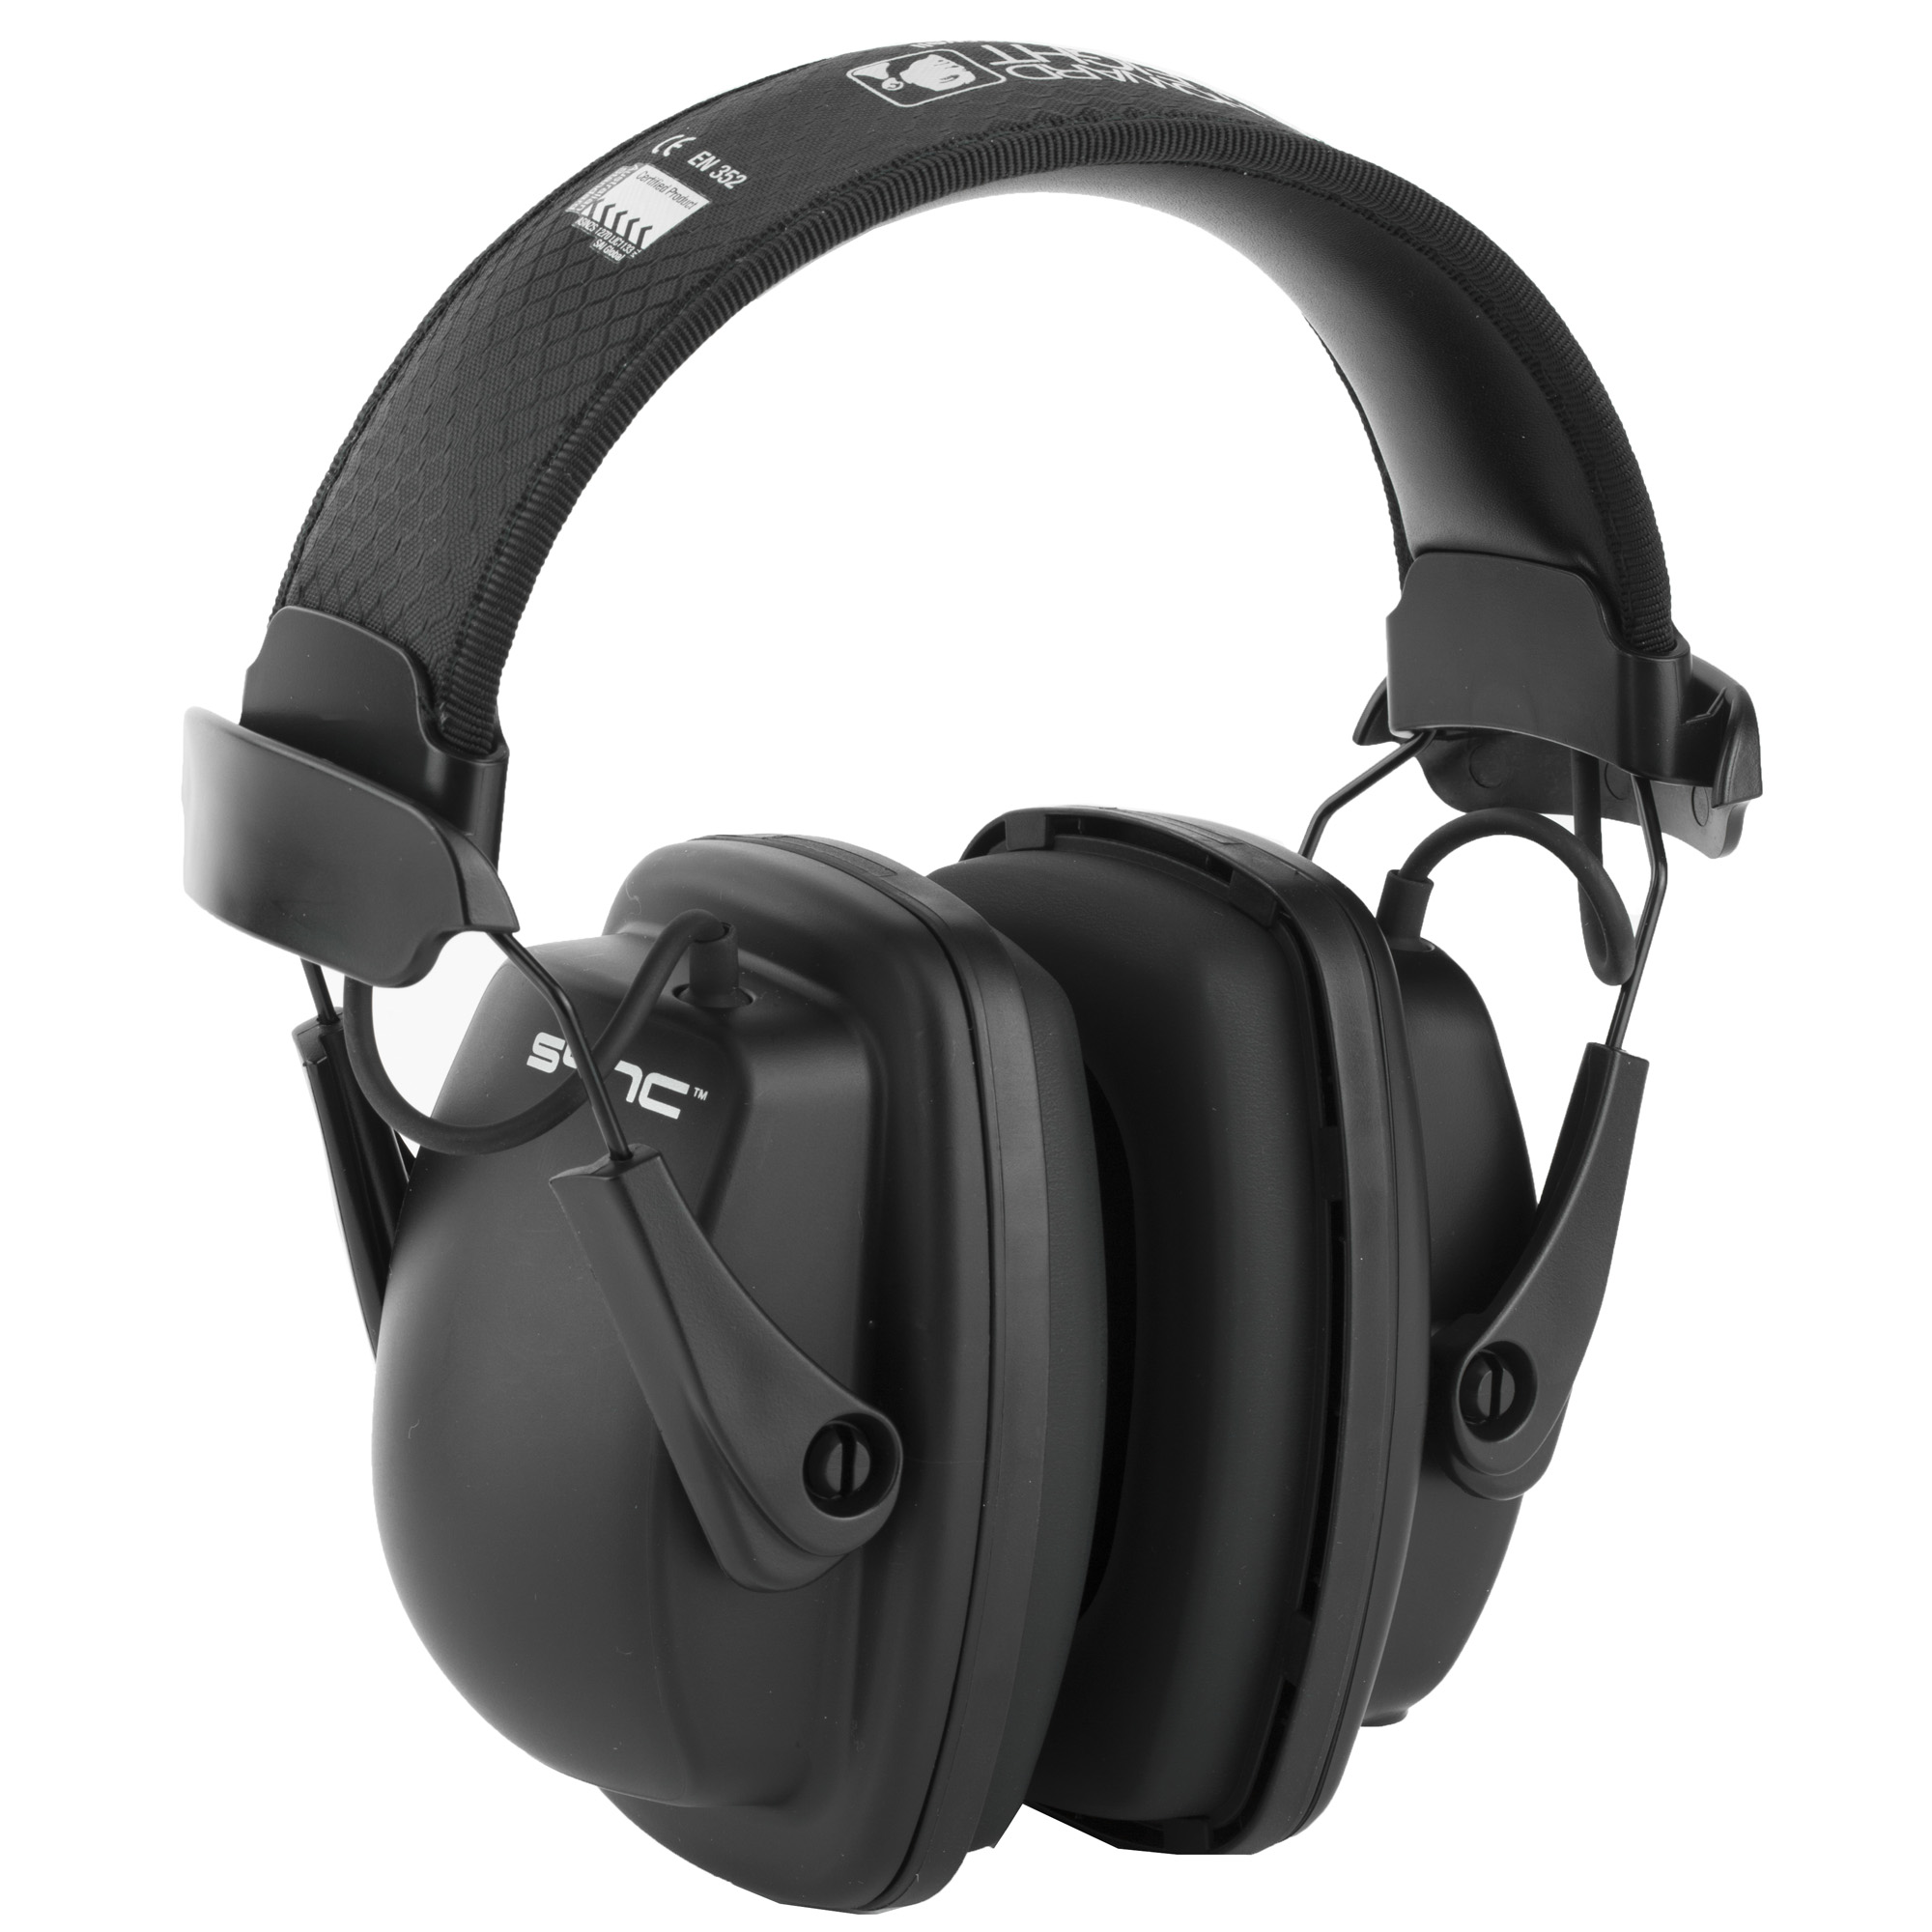 """These hearing protector earmuffs include high-fidelity stereo sound from a user's MP3 player"""" smart phone and other personal listening devices. They feature a stylish"""" DJ-inspired ear cup design"""" sound quality equal to many professional and high-end personal stereo headphones and technology to manage output volume from portable audio devices at safer levels."""